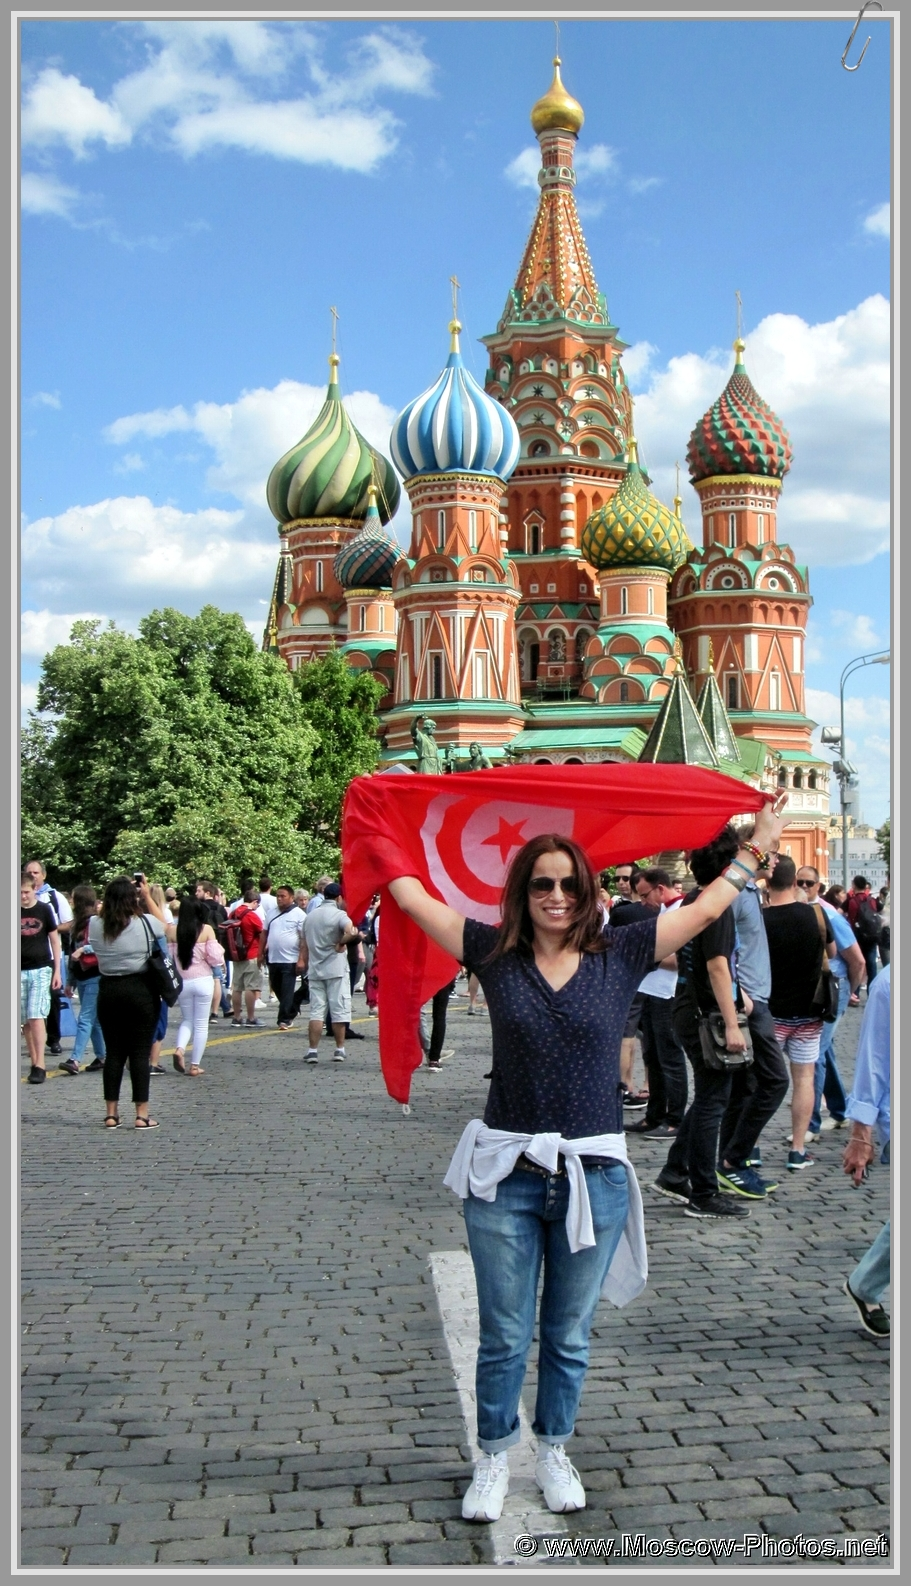 Football fan on Red Square in Moscow during the 2018 FIFA World Cup